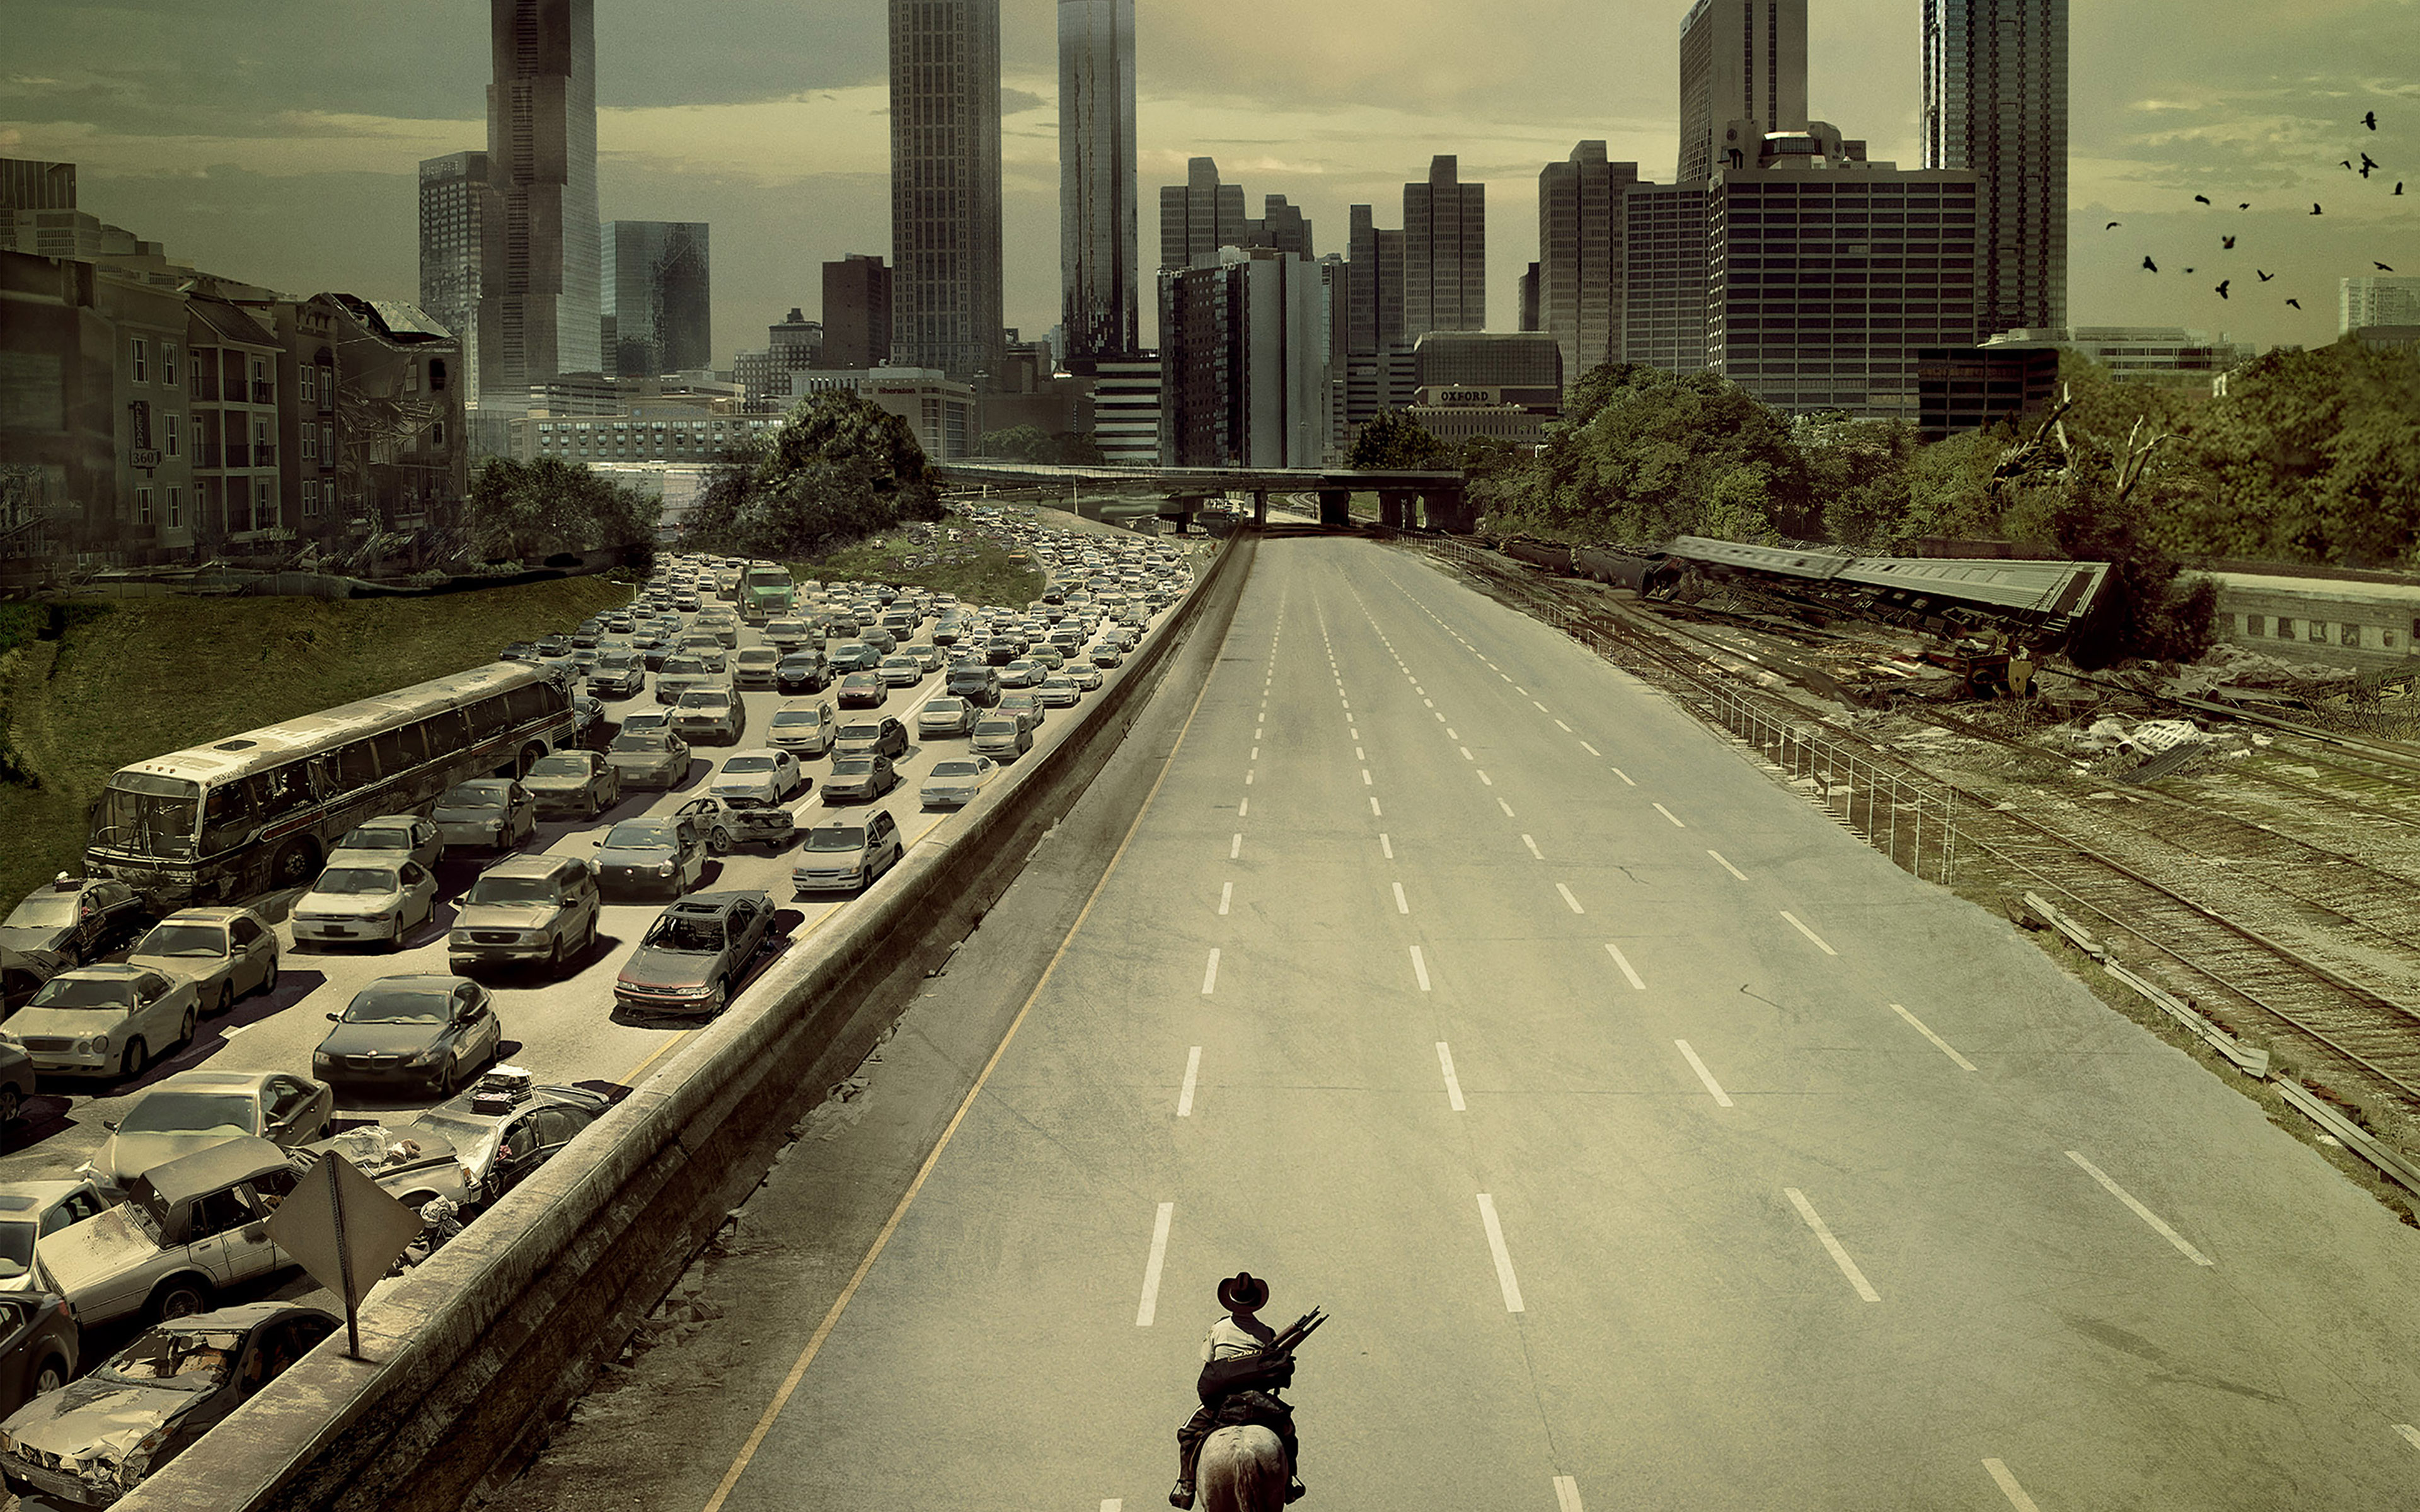 Car Games Wallpapers Hd 1080p Ab34 Wallpaper Walking Dead City Film Papers Co